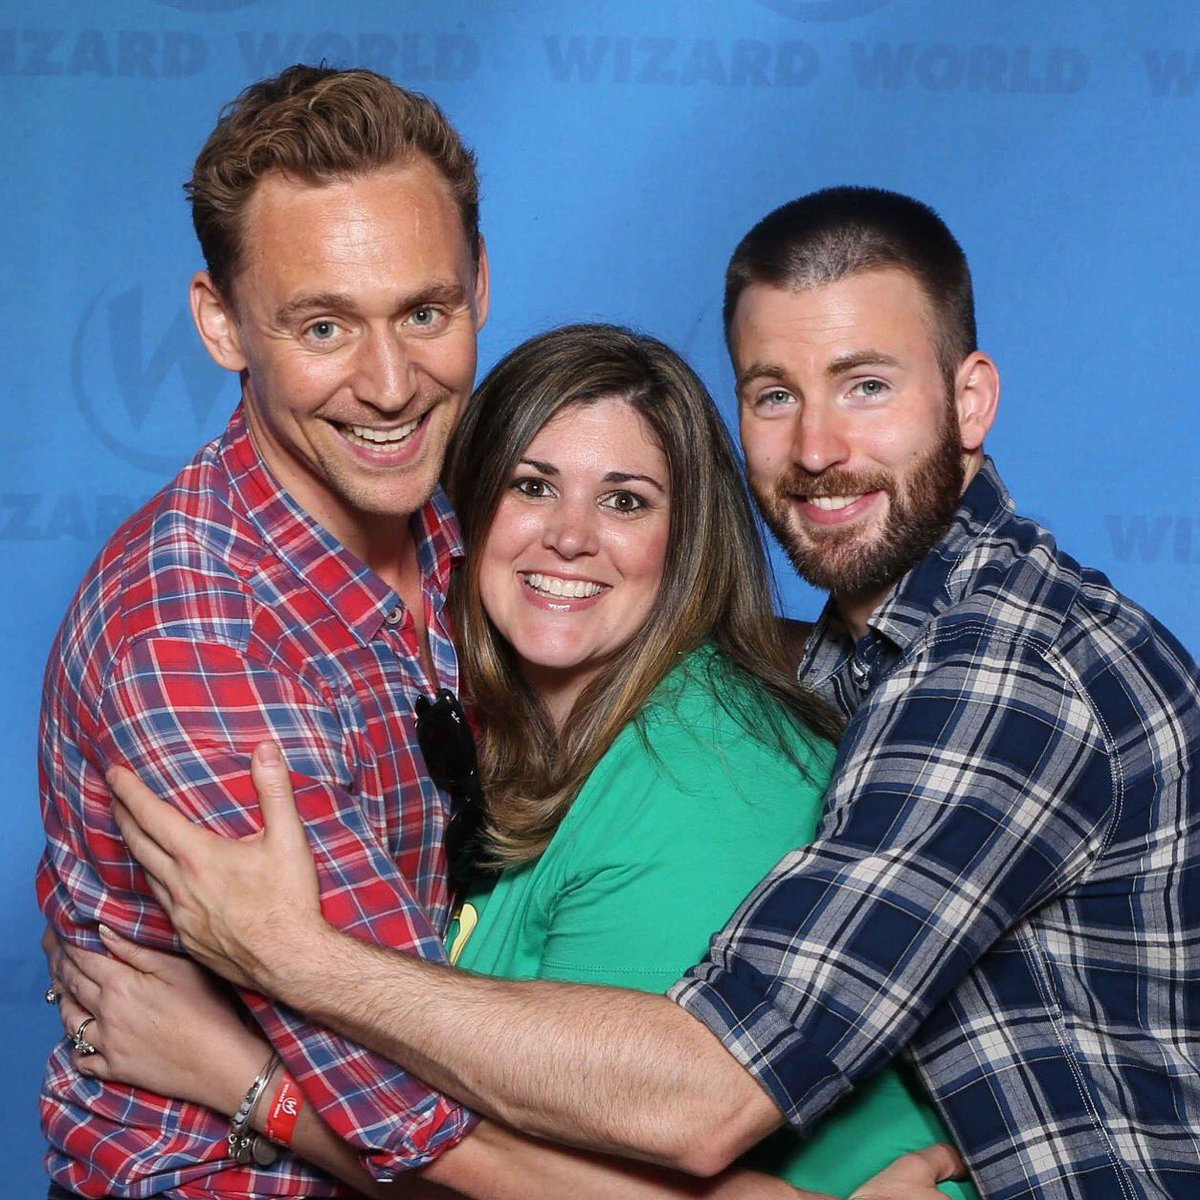 These guys were well worth the extra wait! Thanks for an awesome day @WizardWorld @twhiddleston @ChrisEvans https://t.co/7BpmZCIRtd